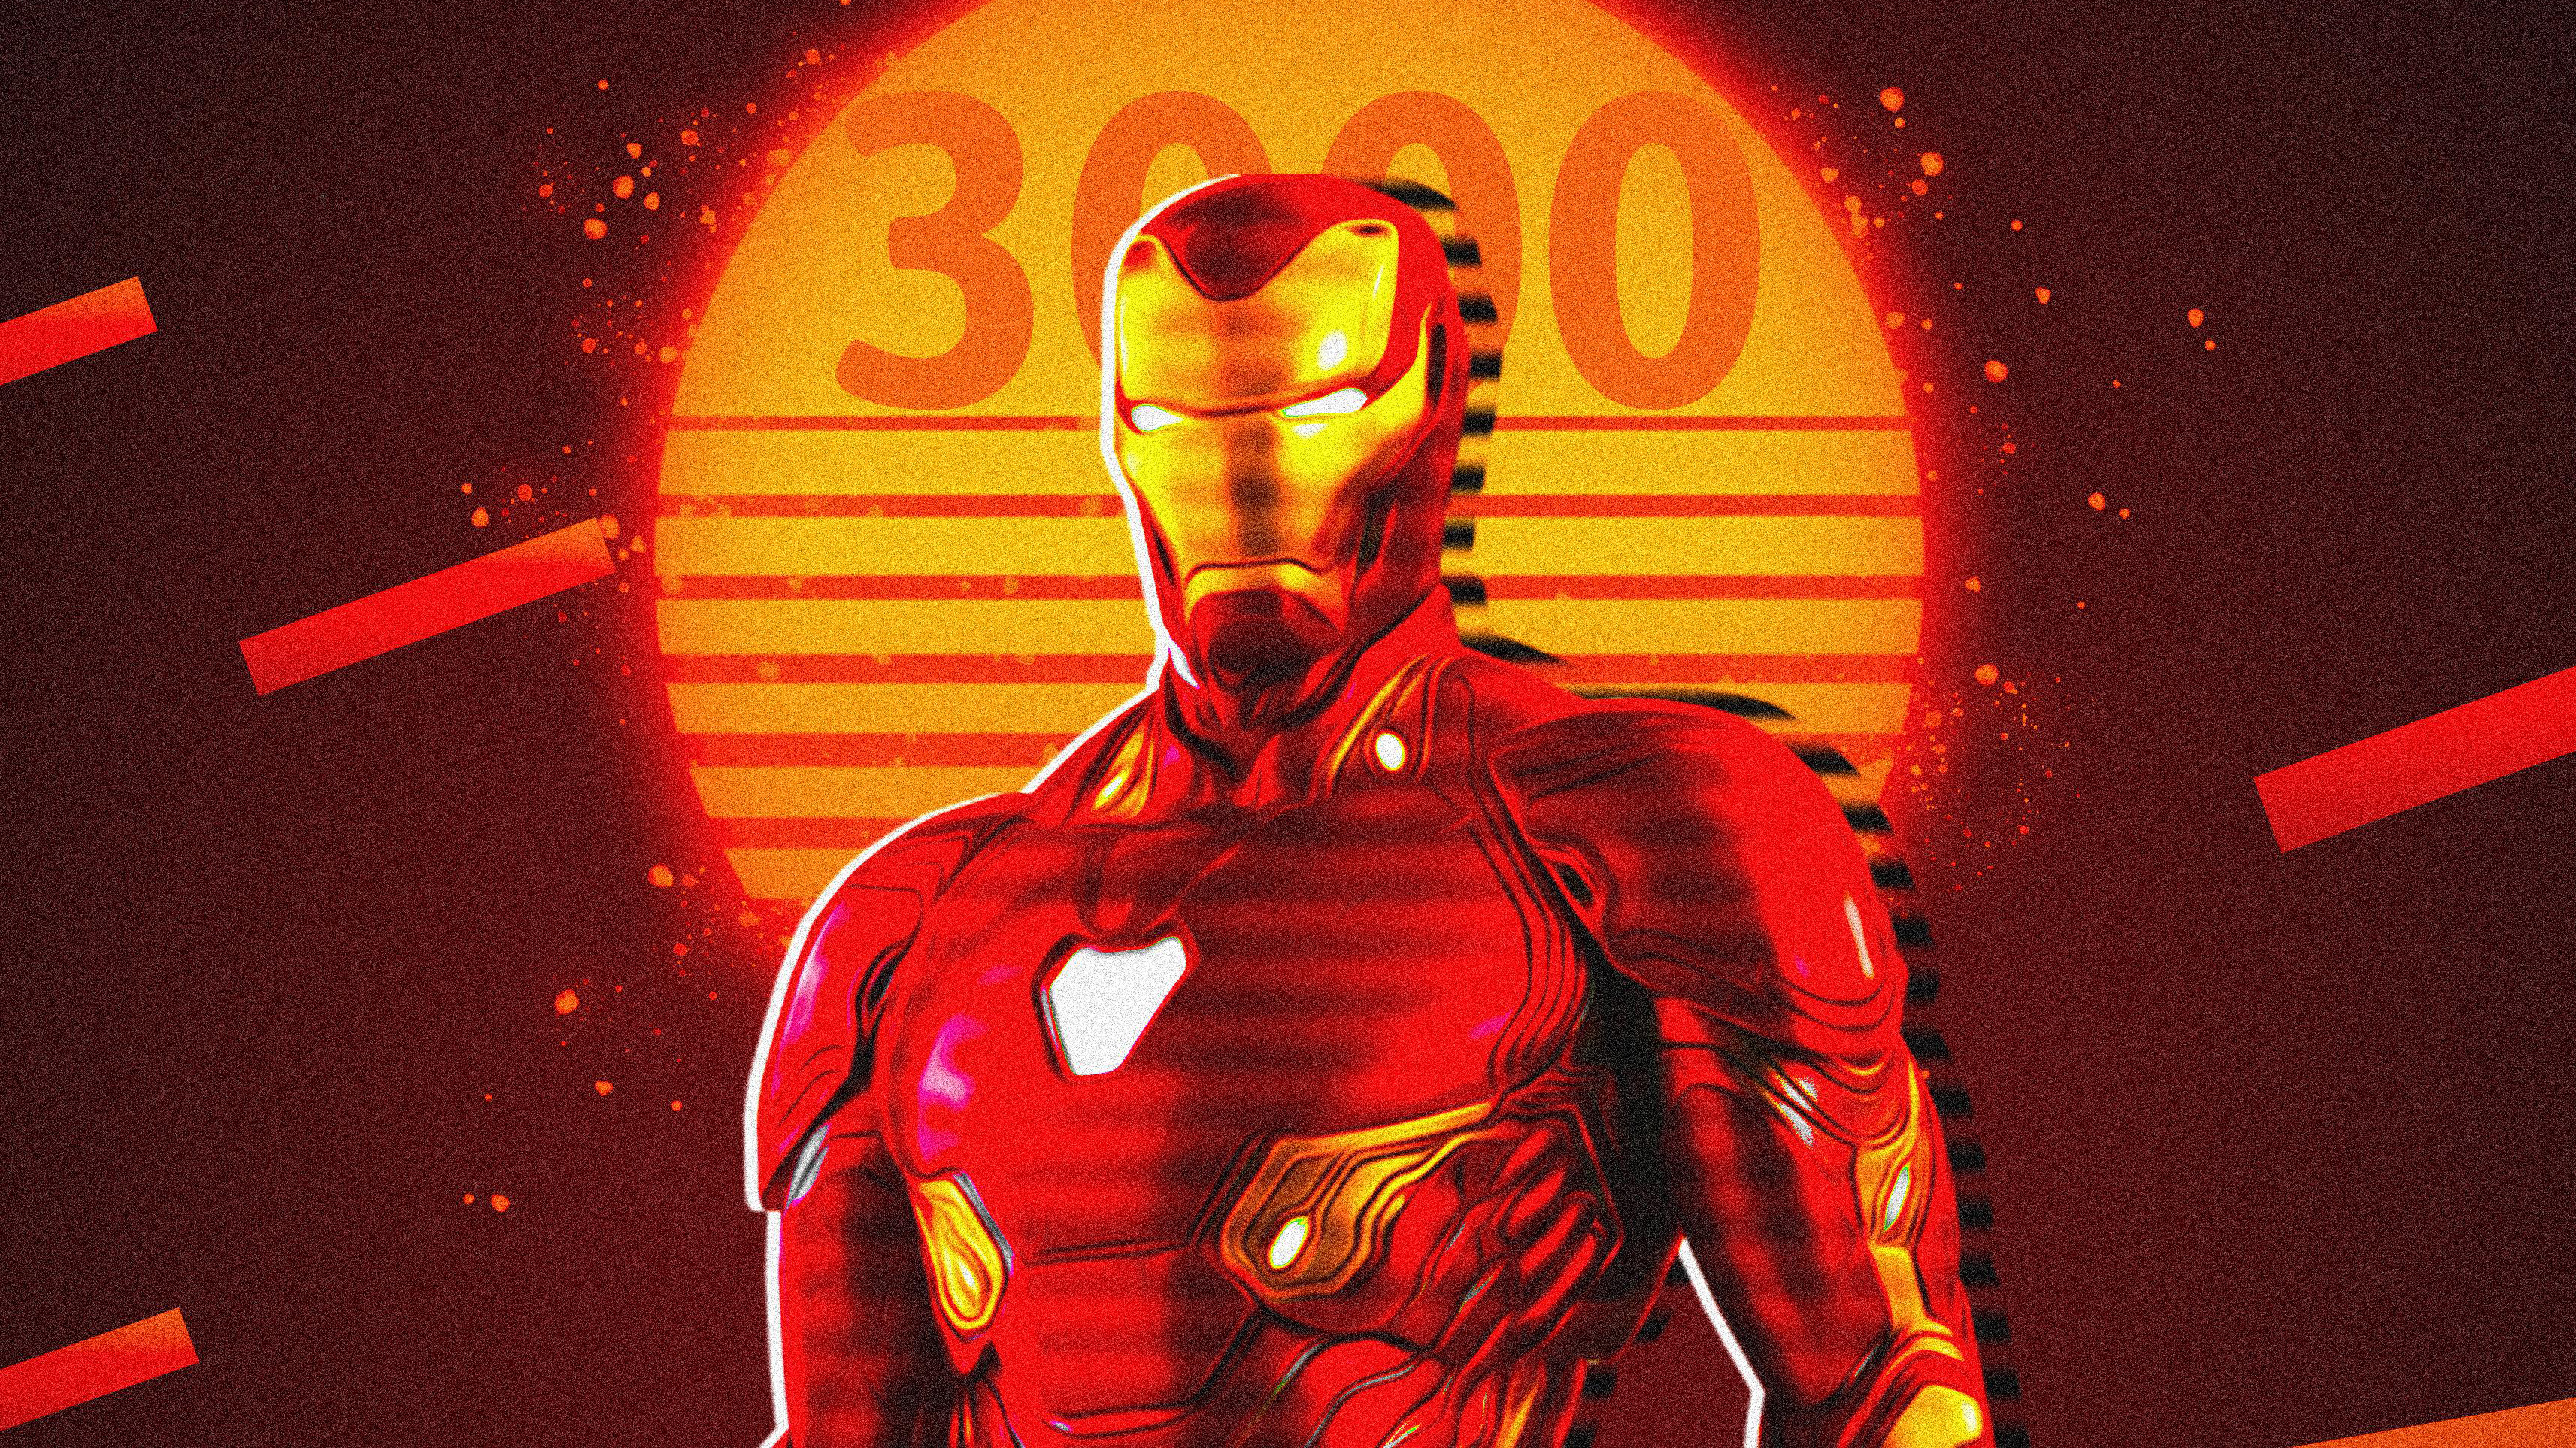 1400x1050 Iron Man Love You 300 1400x1050 Resolution Hd 4k Wallpapers Images Backgrounds Photos And Pictures